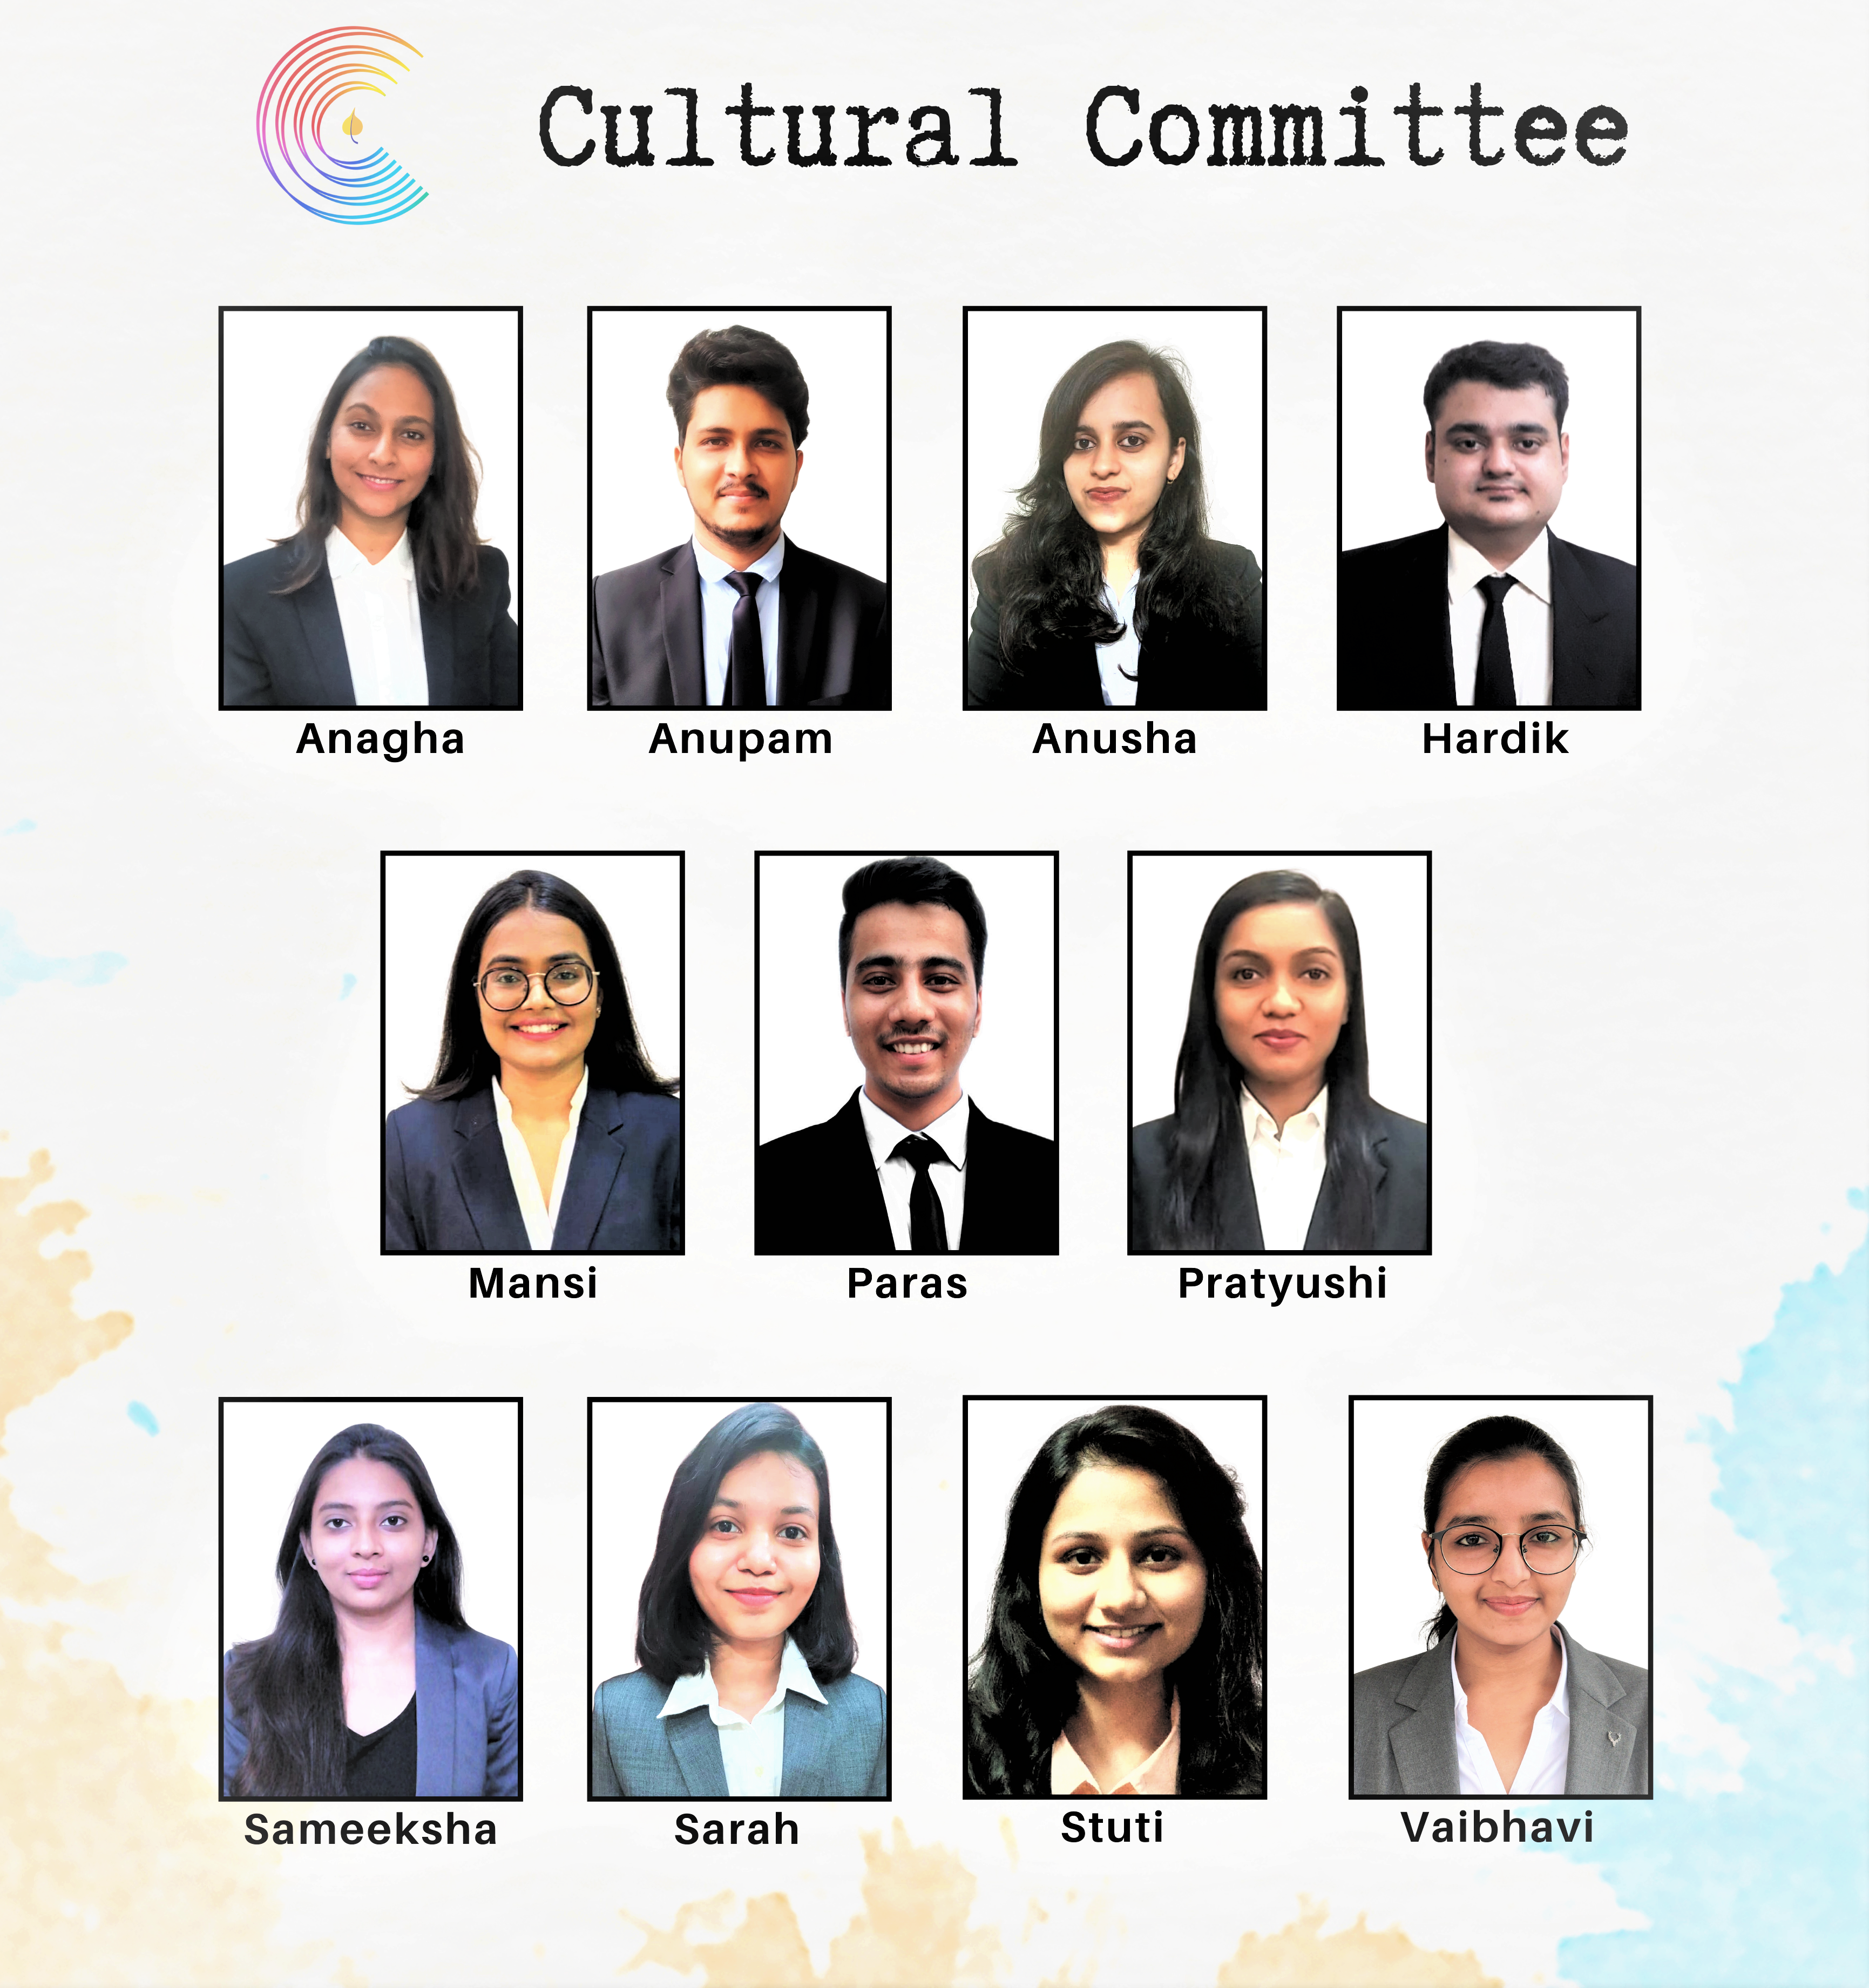 Cultural Committee